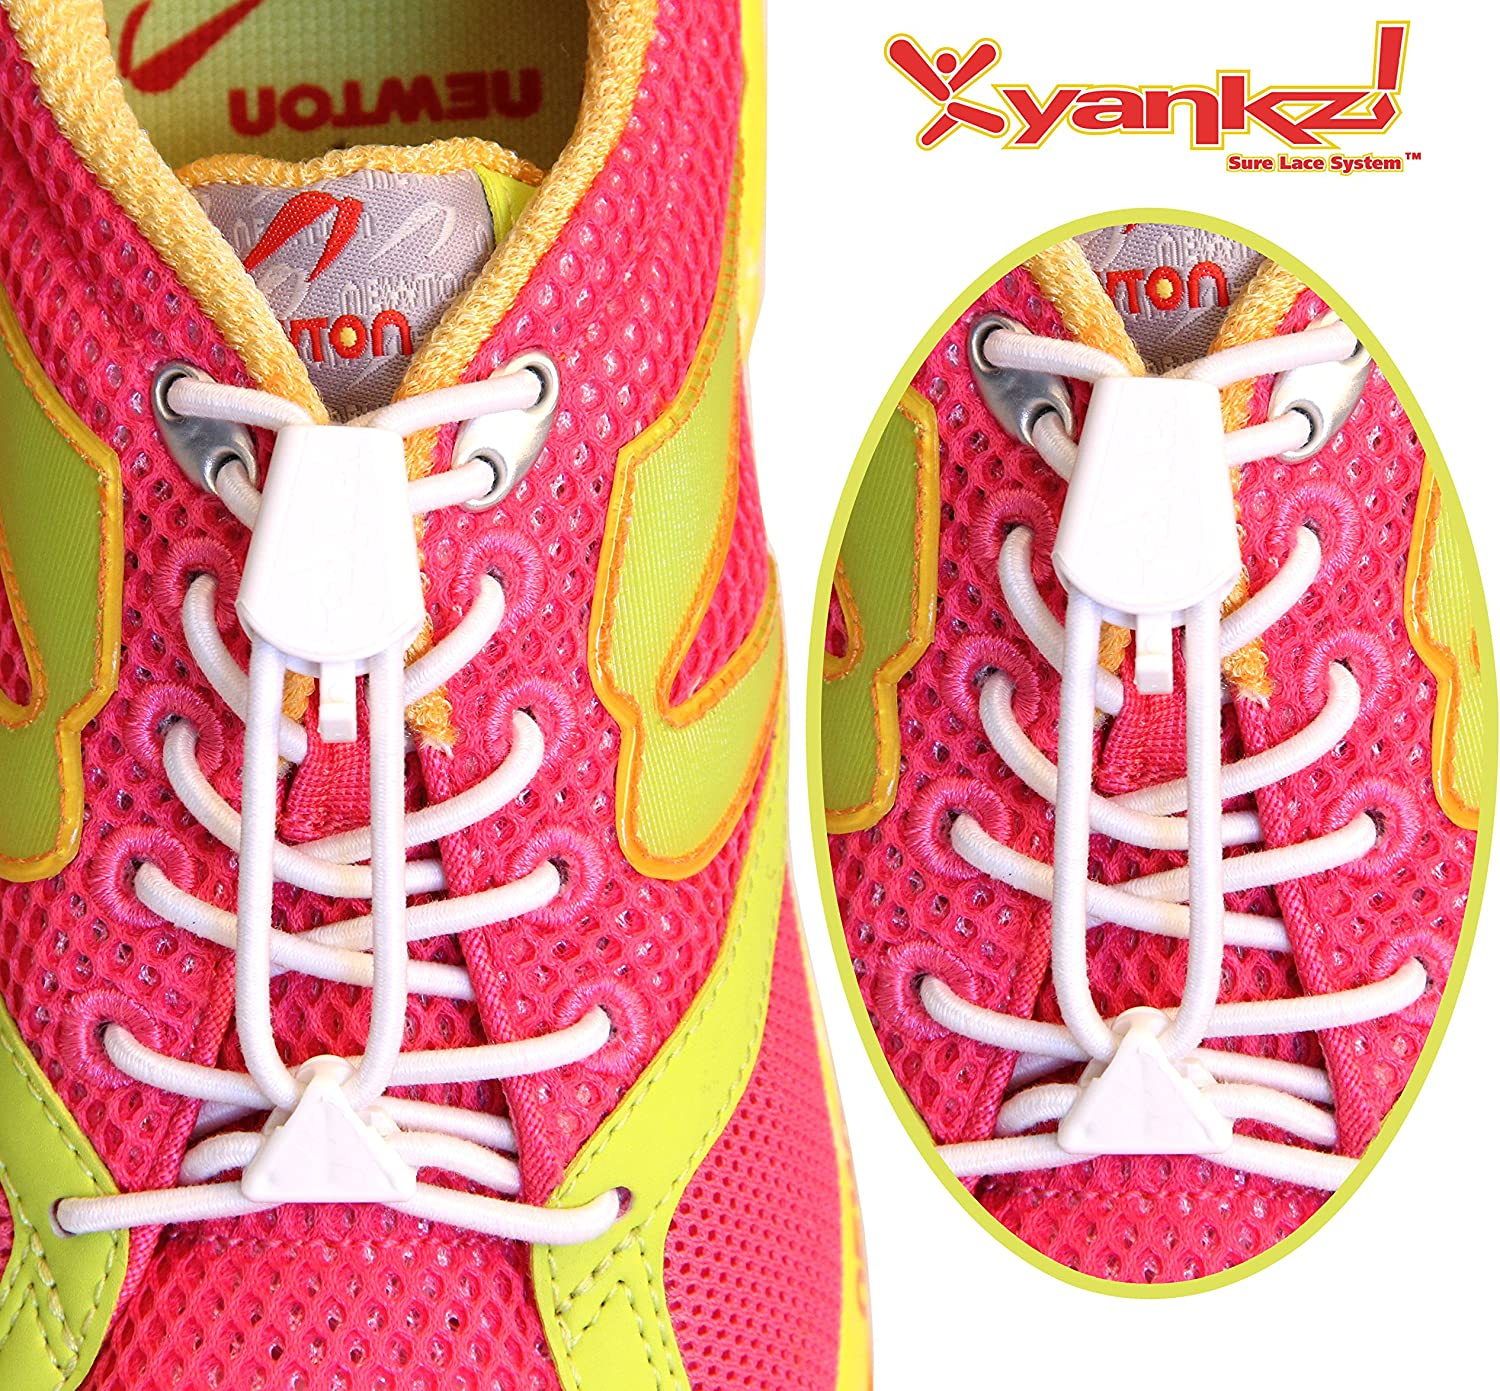 Yankz! SureLace No Tie Elastic Shoelace System with 2 Lock Adjustment, White Laces with White Locks - Locking Lace Replacement for Kids, Adults, and Senior Walking and Running Shoes: Clothing